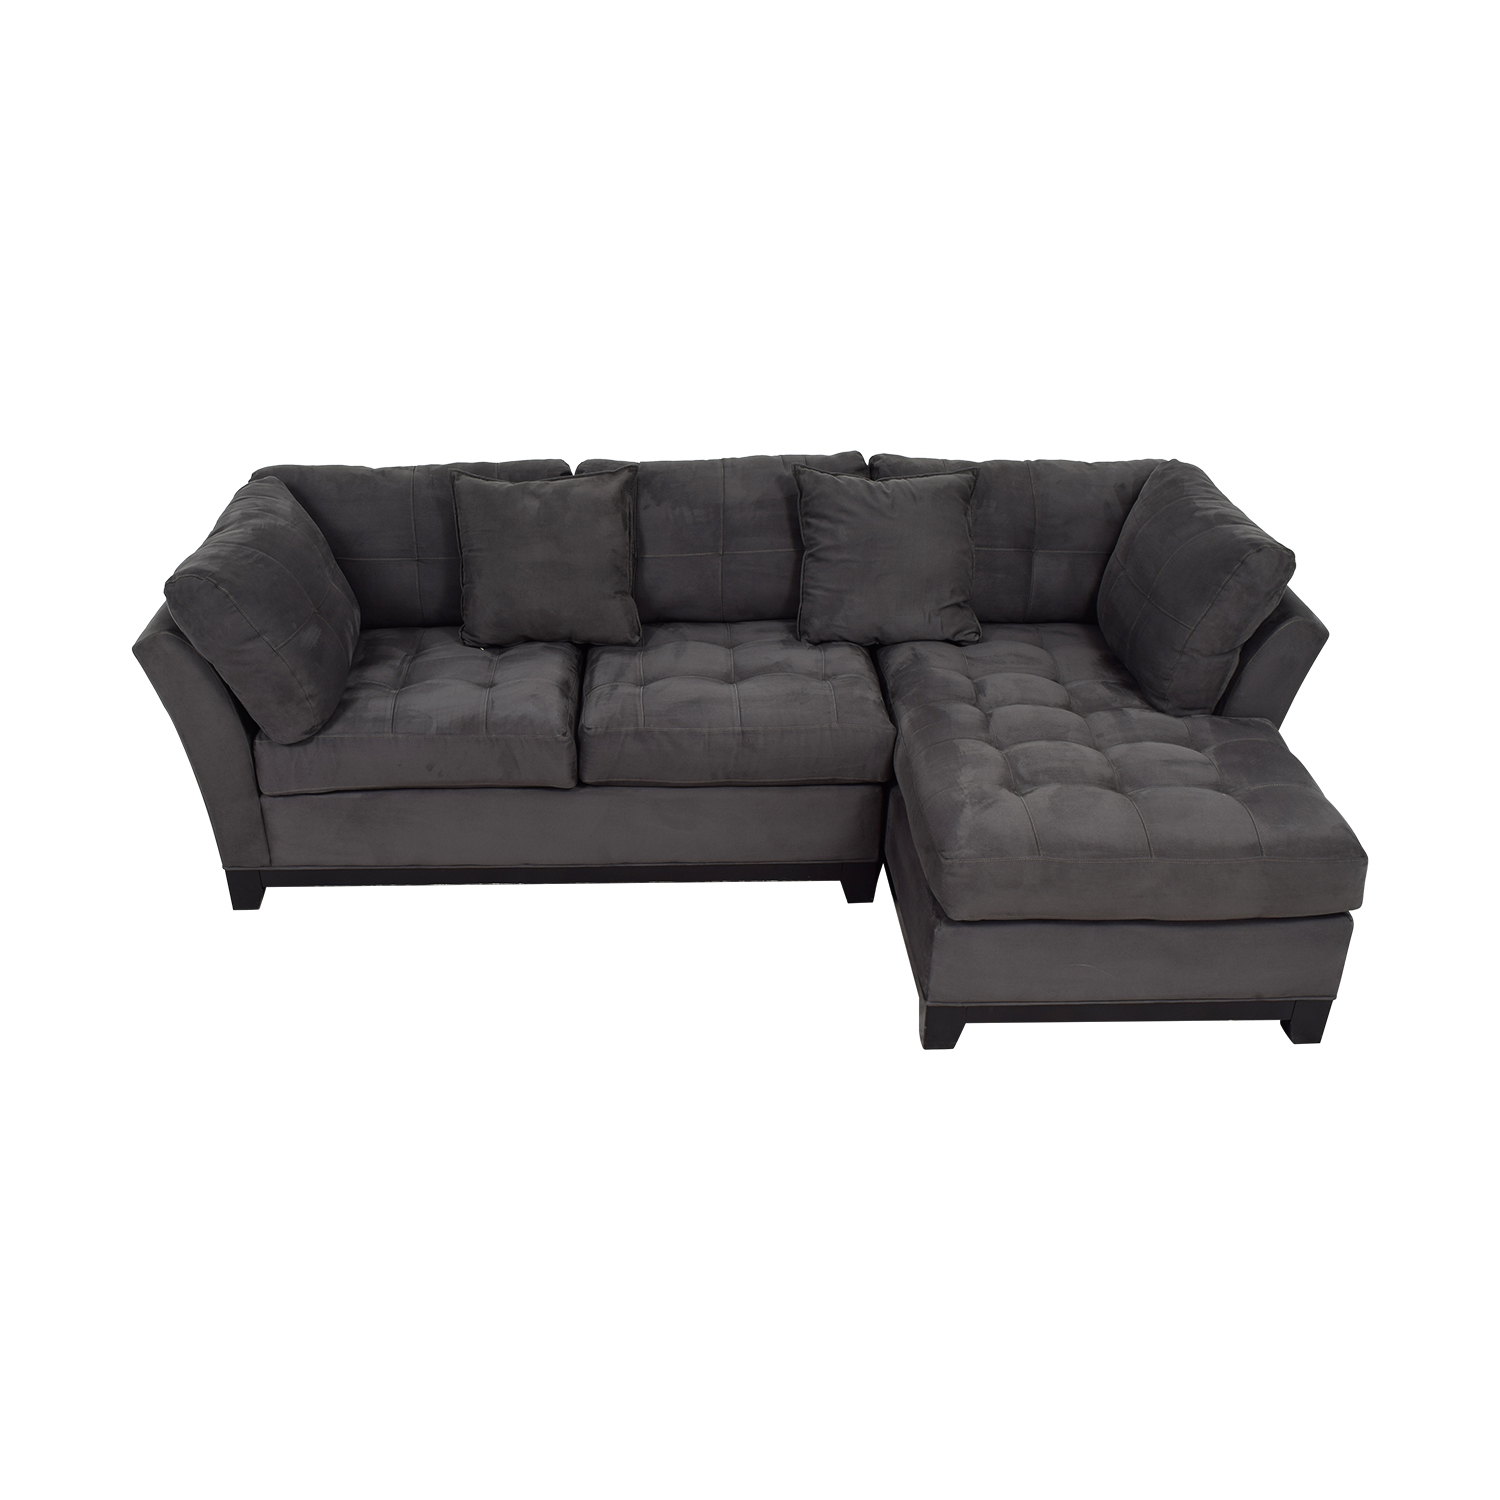 Raymour & Flanigan Raymour & Flanigan Cindy Crawford Grey Chaise Sectional dimensions